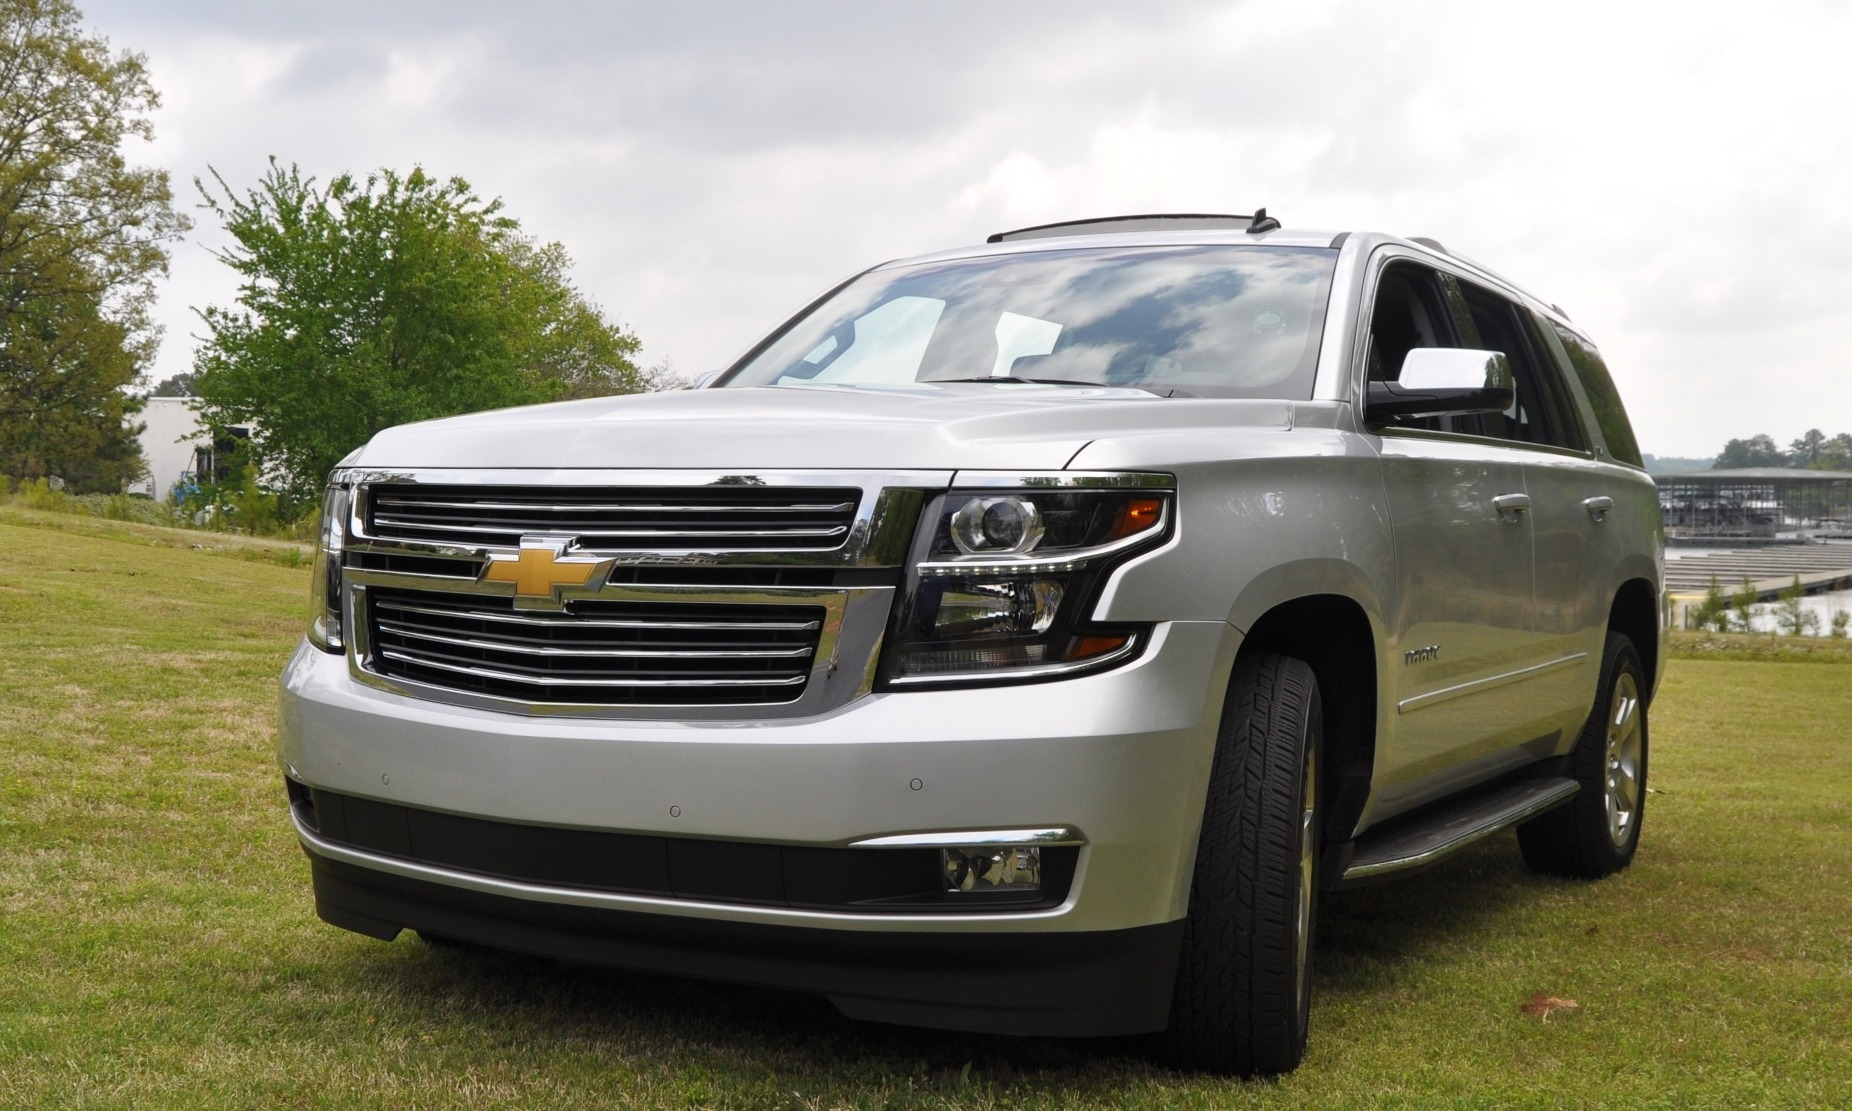 2012 chevrolet tahoe gas mileage mpg and fuel economy. Black Bedroom Furniture Sets. Home Design Ideas